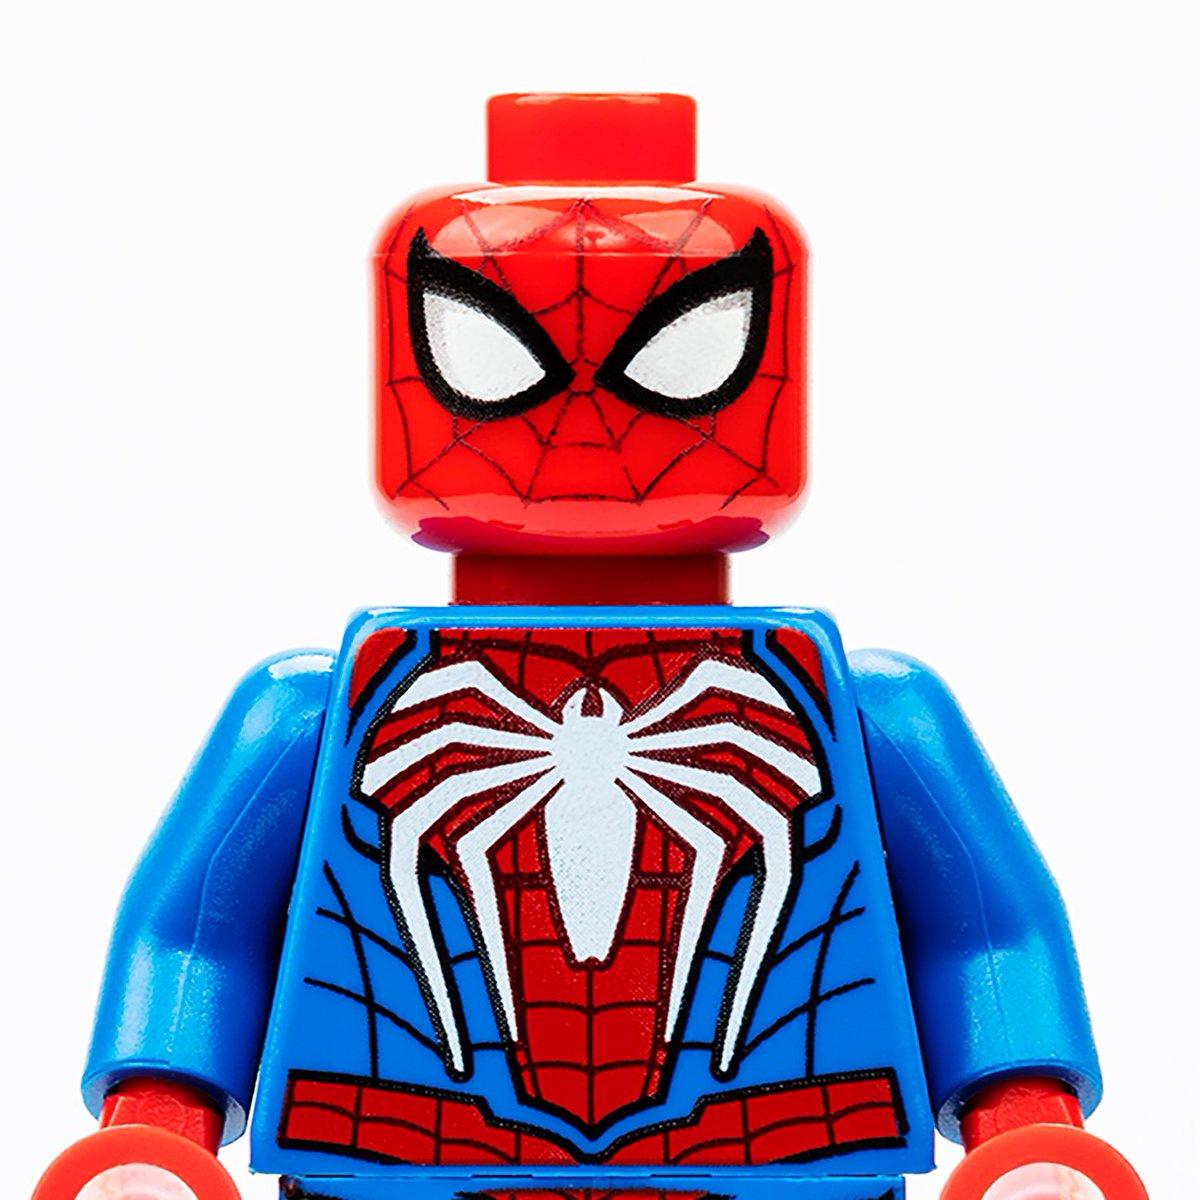 We've arrived at @Comic_Con! Retweet for a chance to win the Amazing PS4 @SpiderMan minifigure🕷#SDCC2019  #LEGOSDCC #LEGOMarvel http://lego.build/SDCC19Giveaway